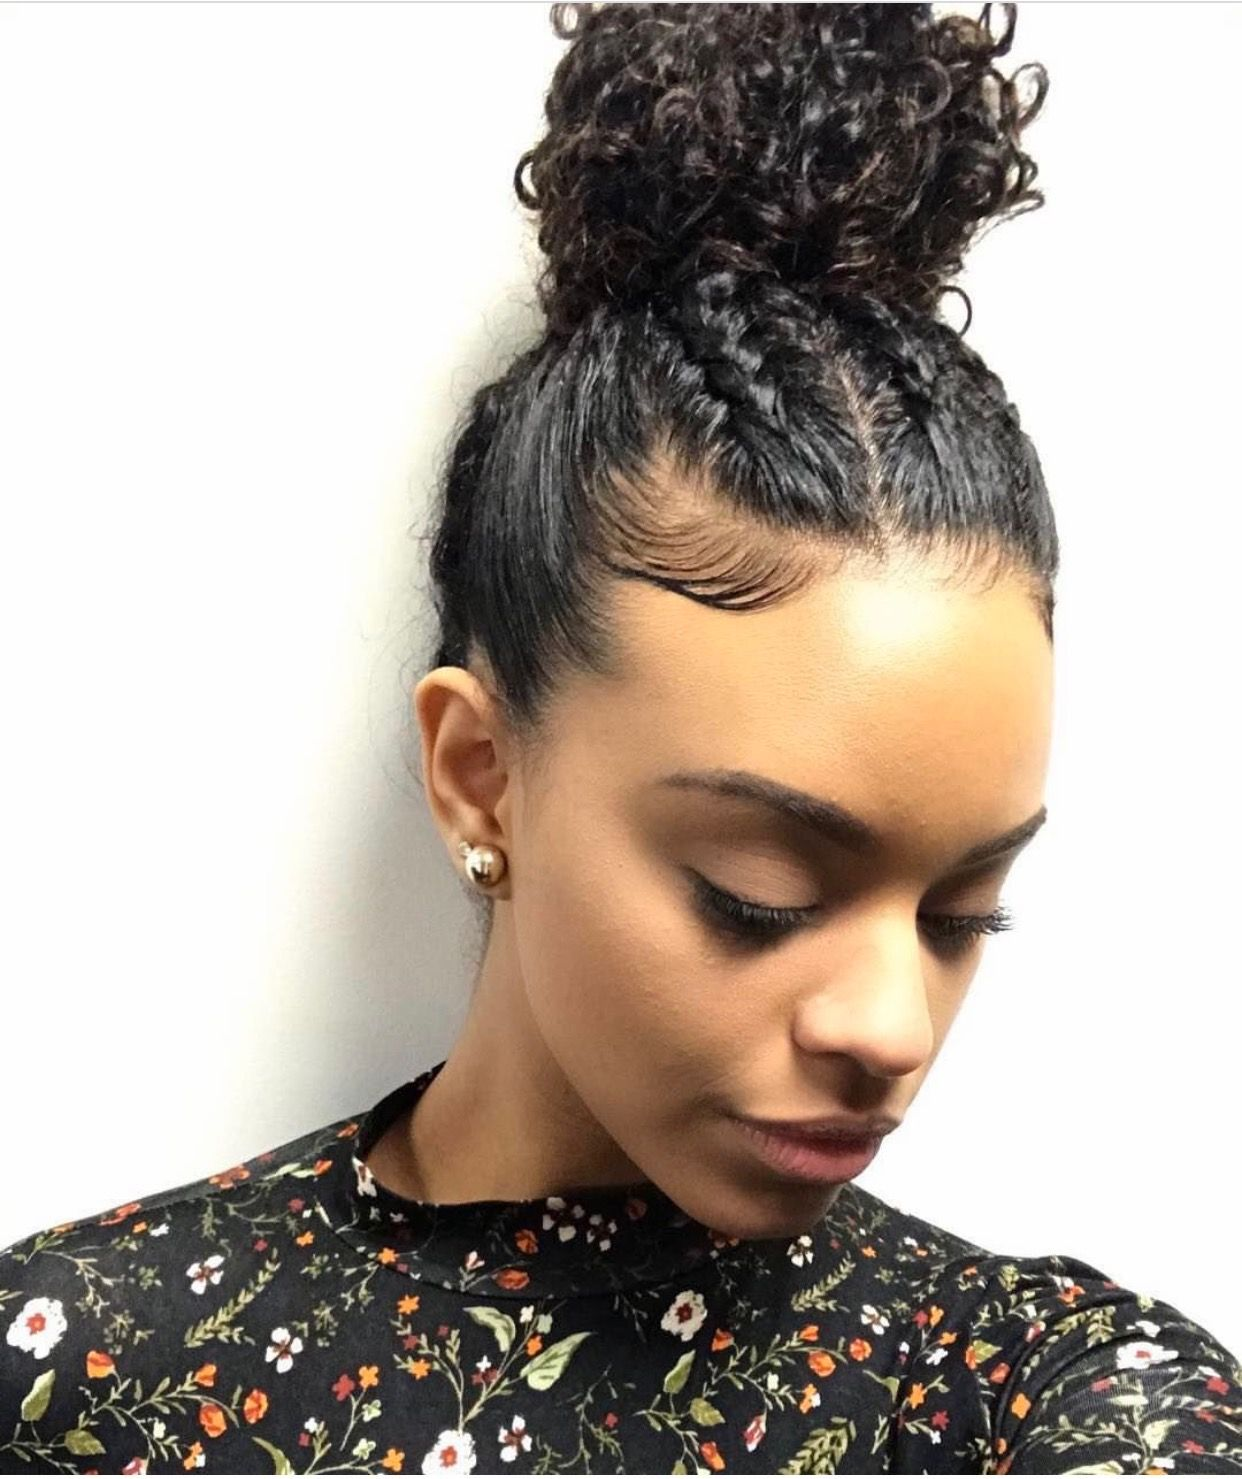 pin by mellony kailey on short hairstyles in 2019 | curly